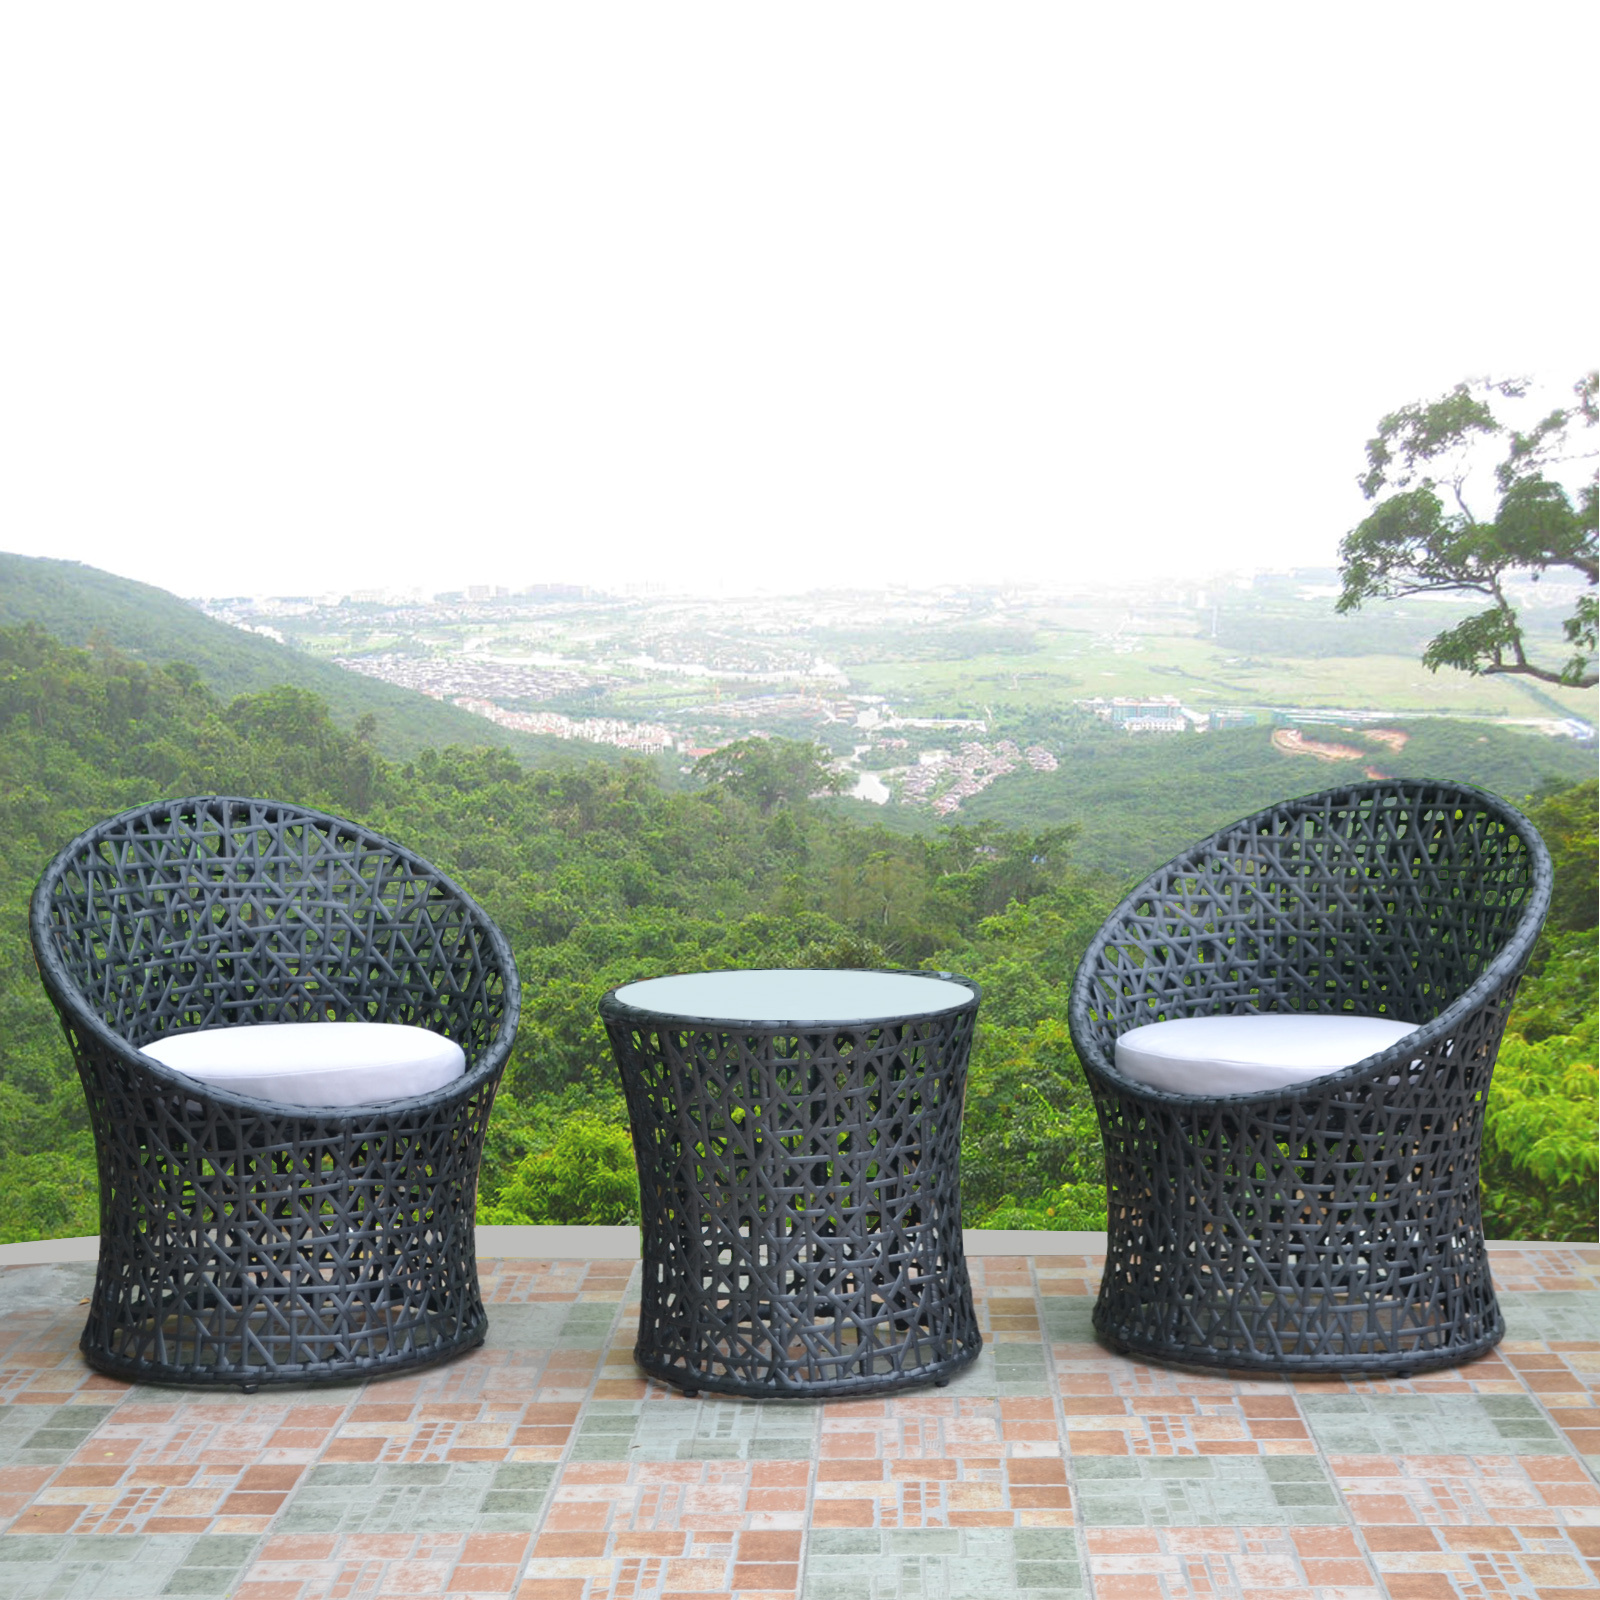 egg chairs glass coffee table outdoor rattan garden wicker furniture